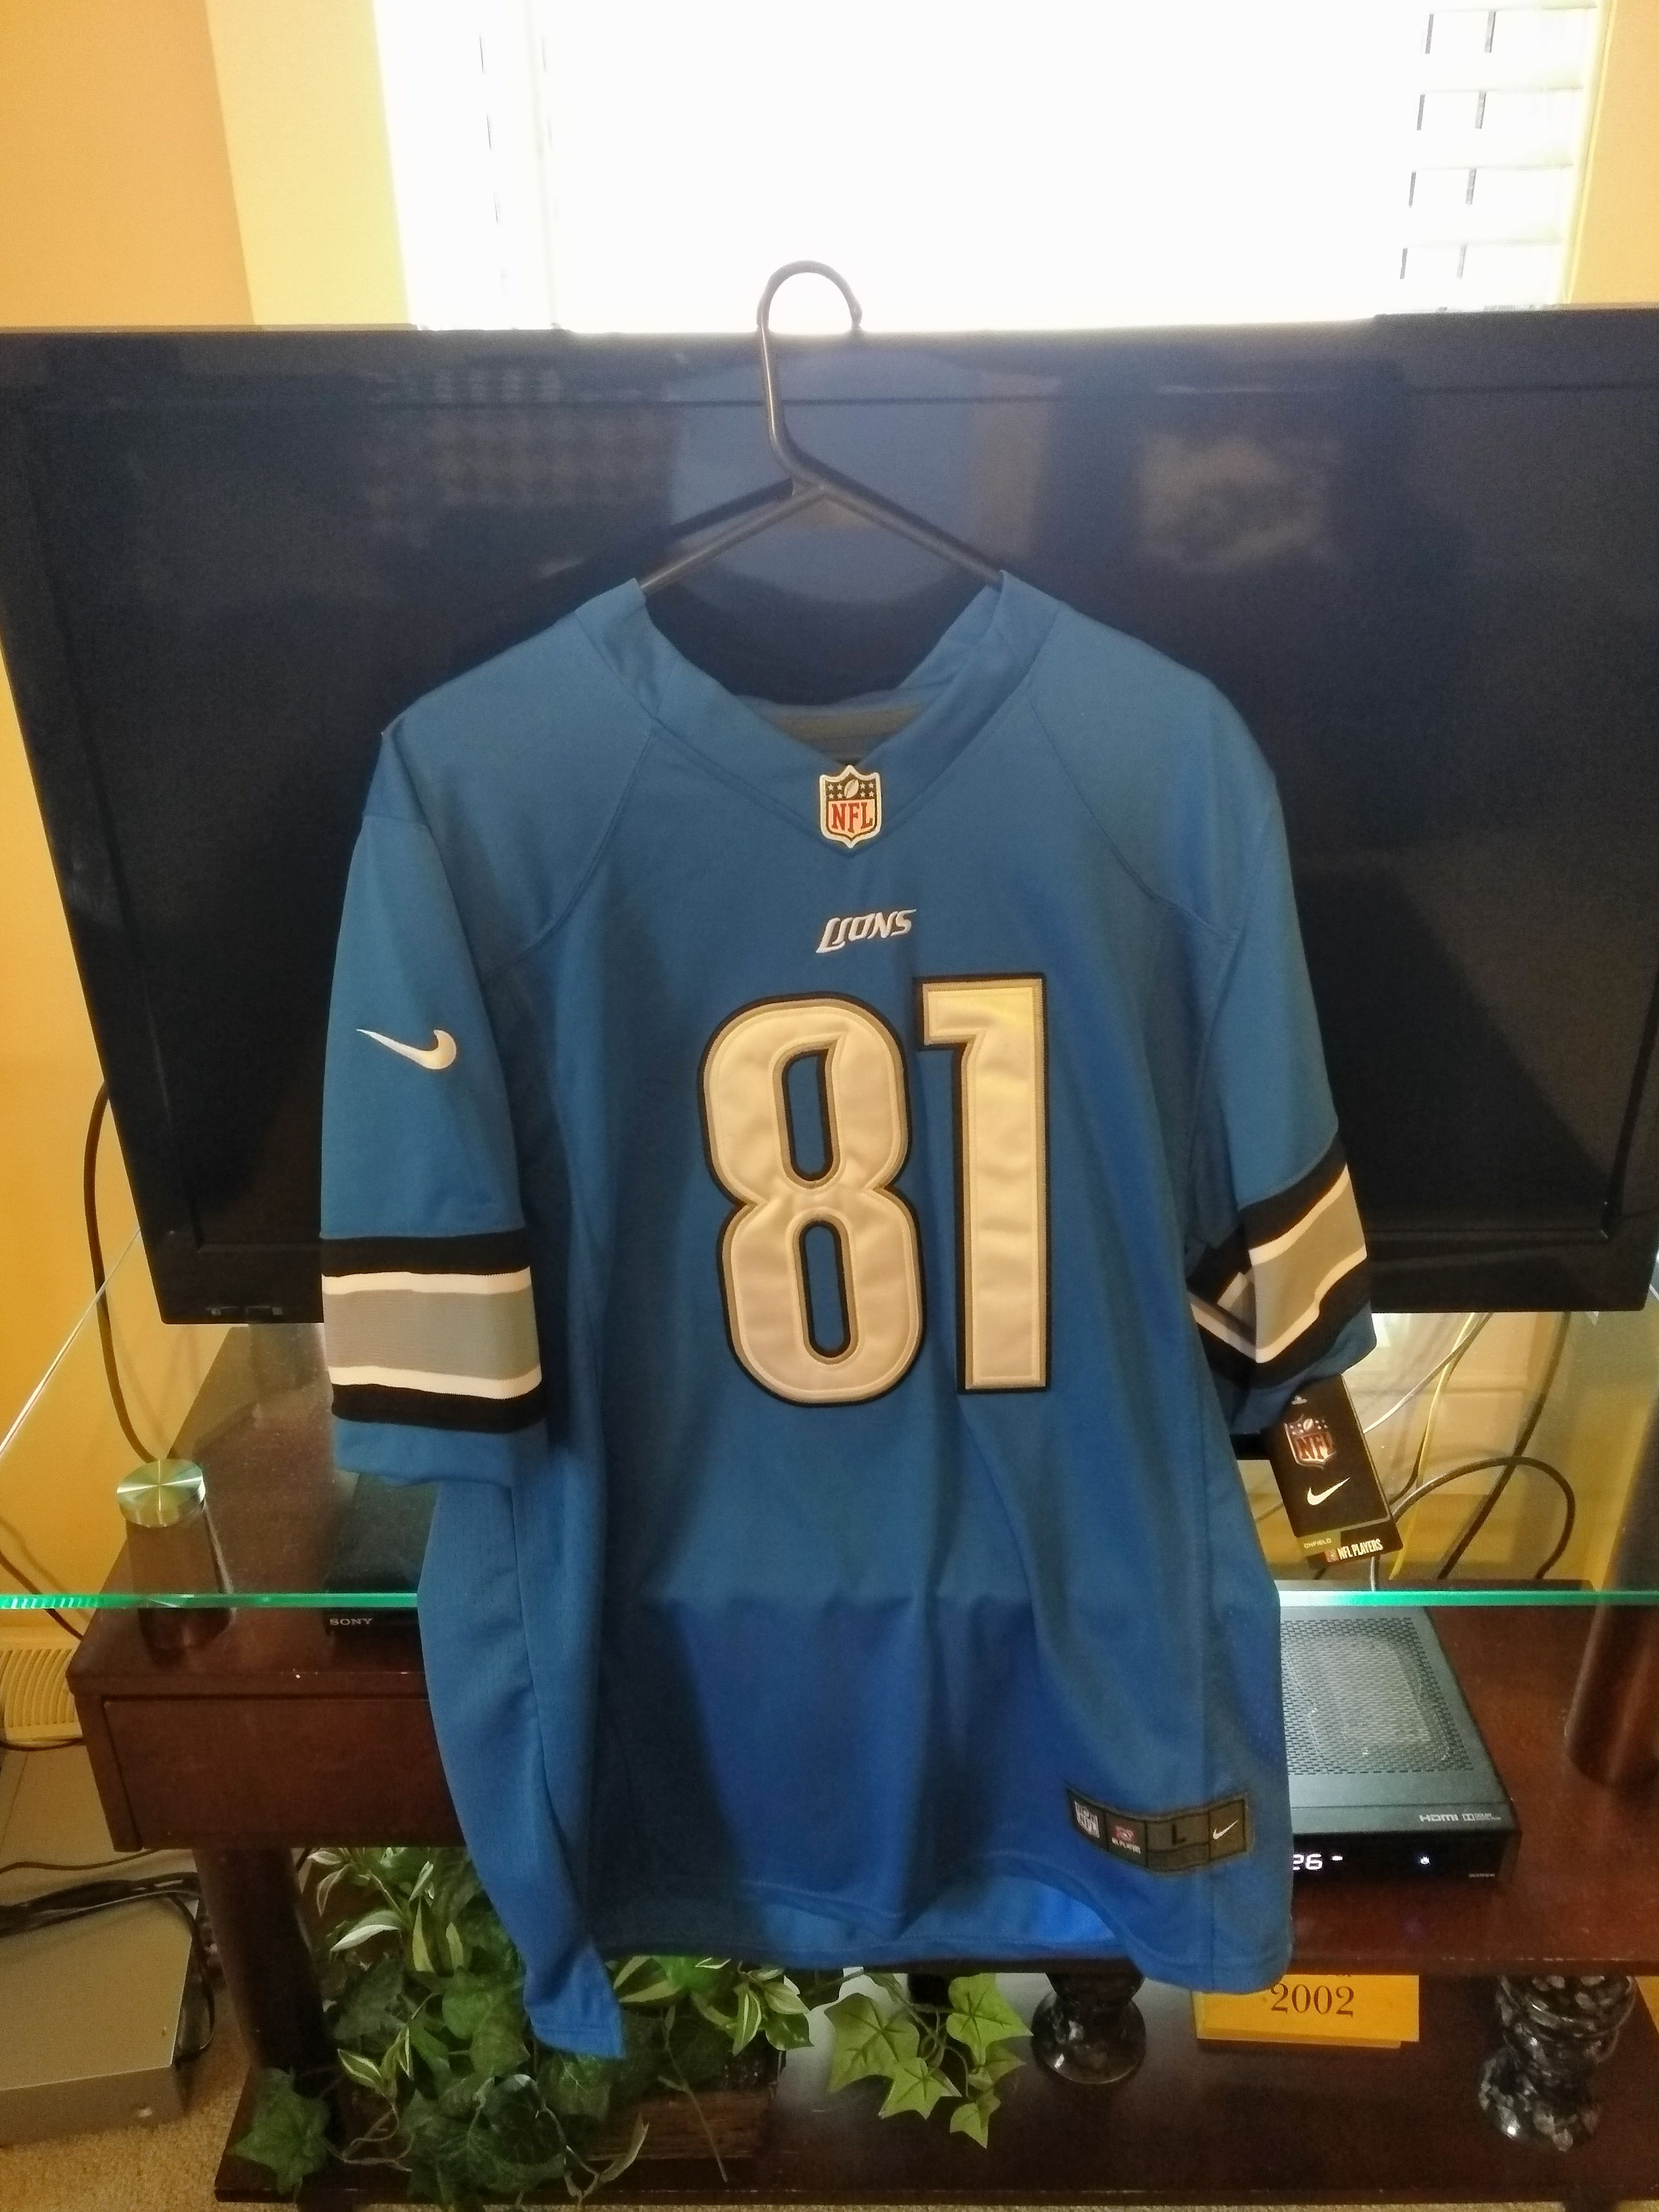 lions jersey for sale